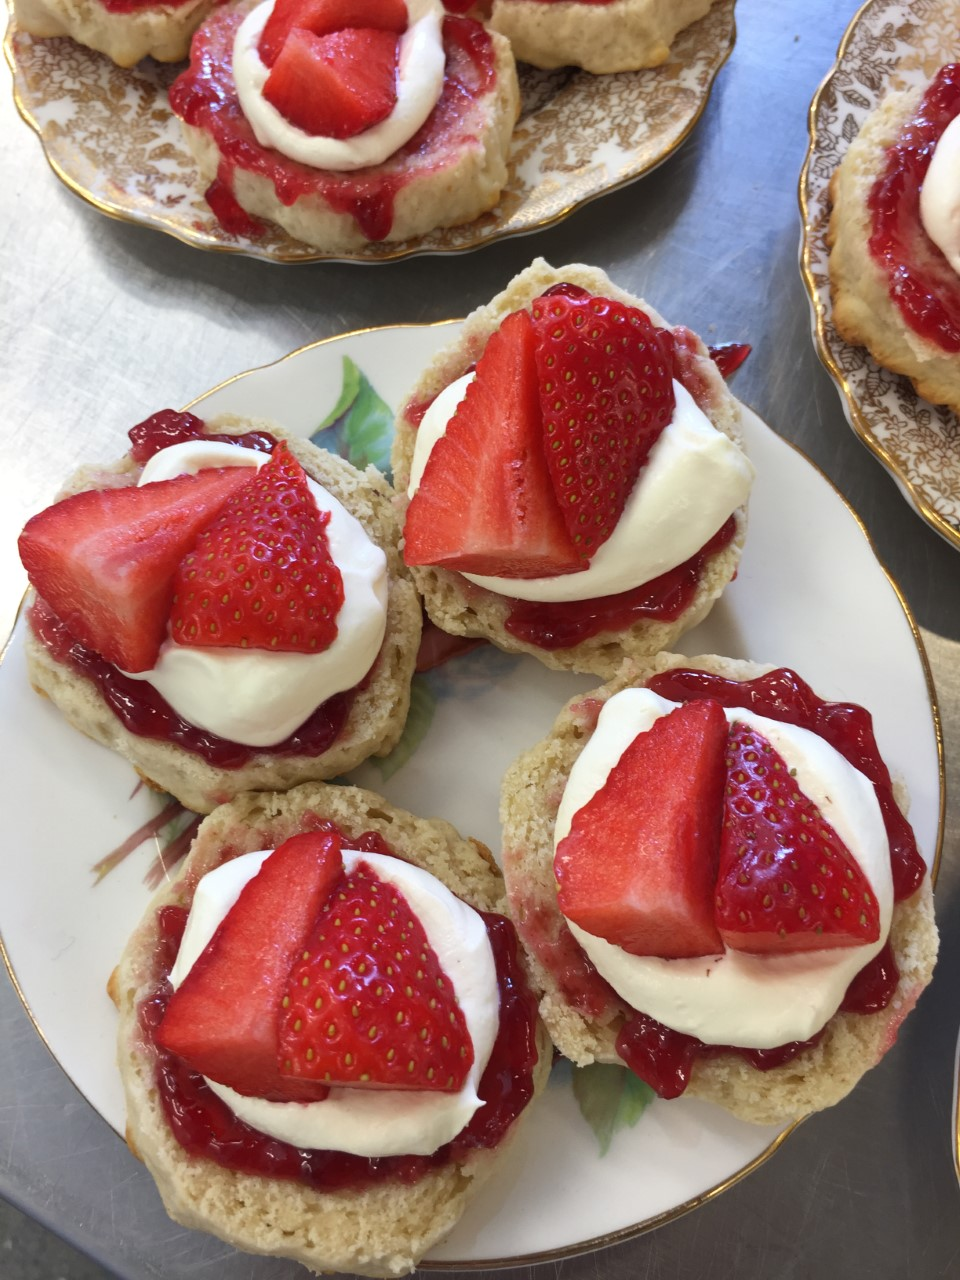 http://Four%20classic%20cream%20tea%20scones%20with%20jam,%20cream%20and%20fresh%20strawberries%20on%20top%20on%20a%20pretty%20vintage%20plate.